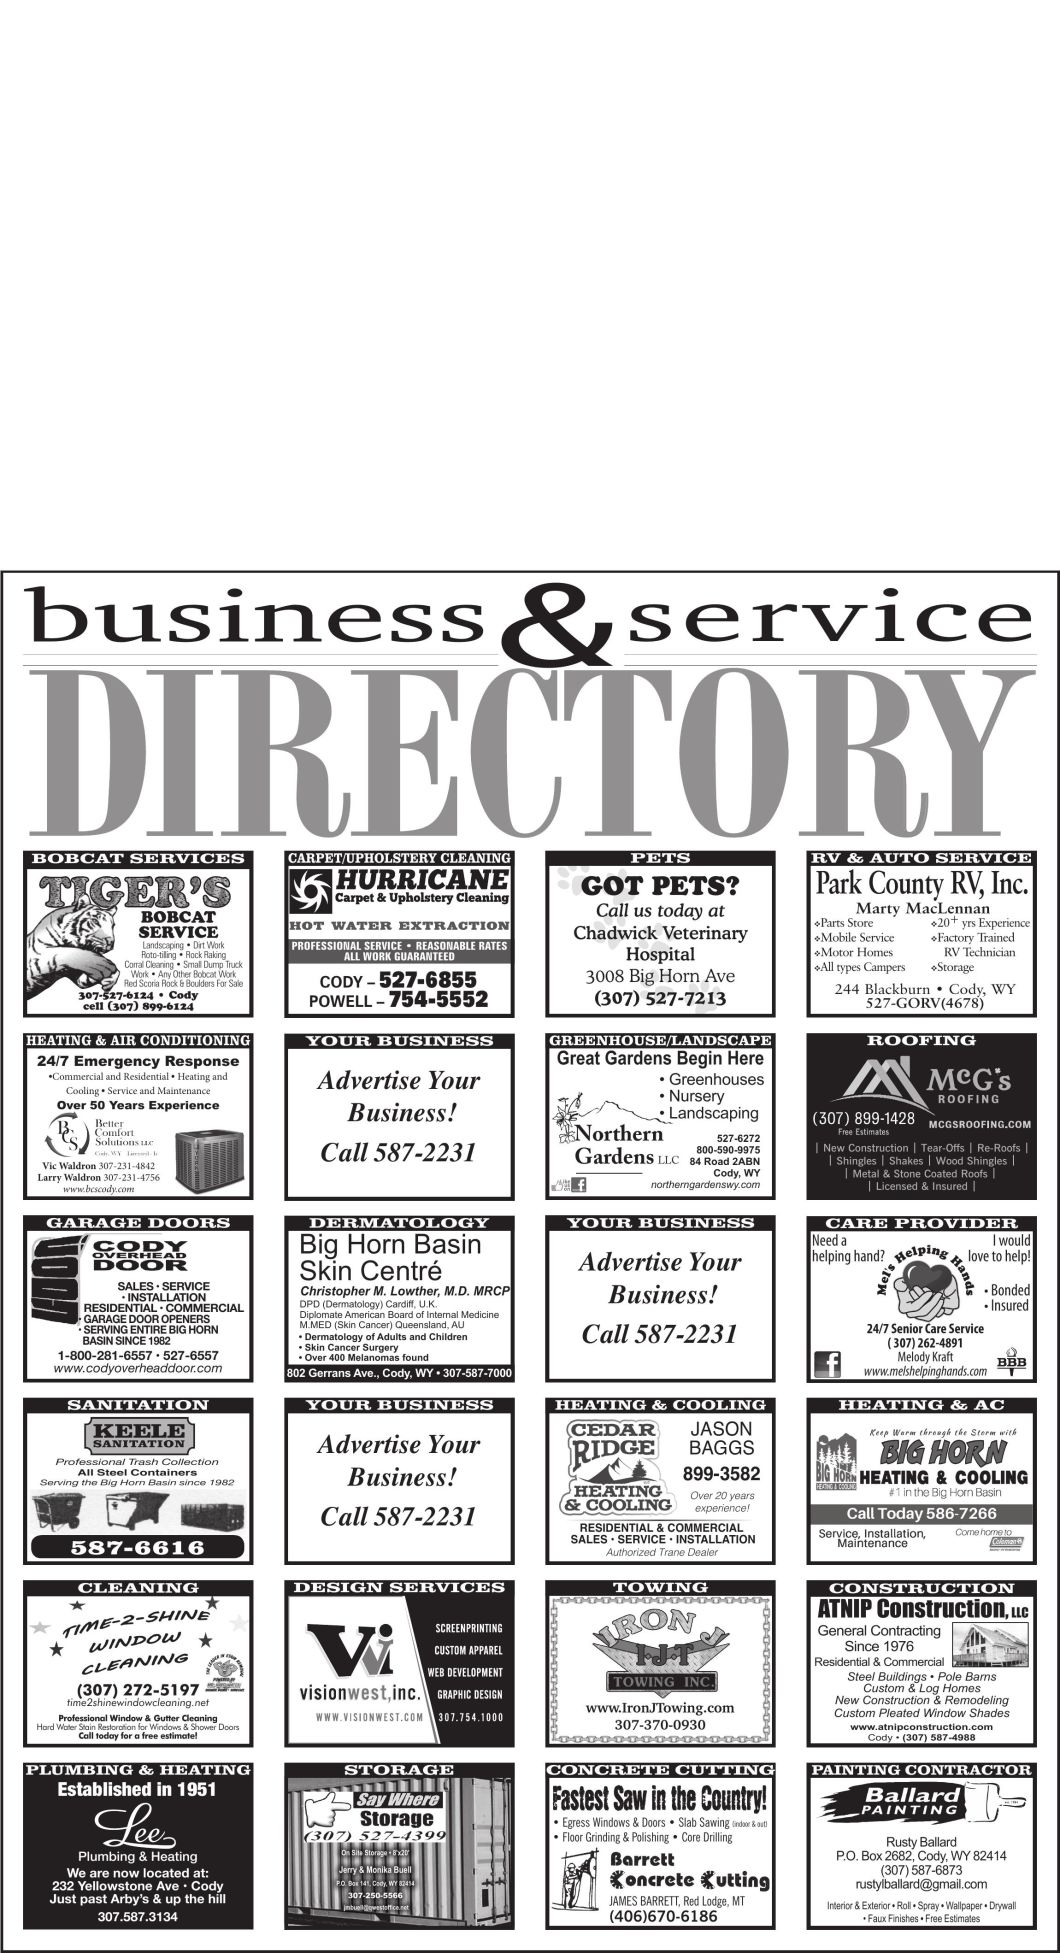 000001_business_and_service_directory_small_services